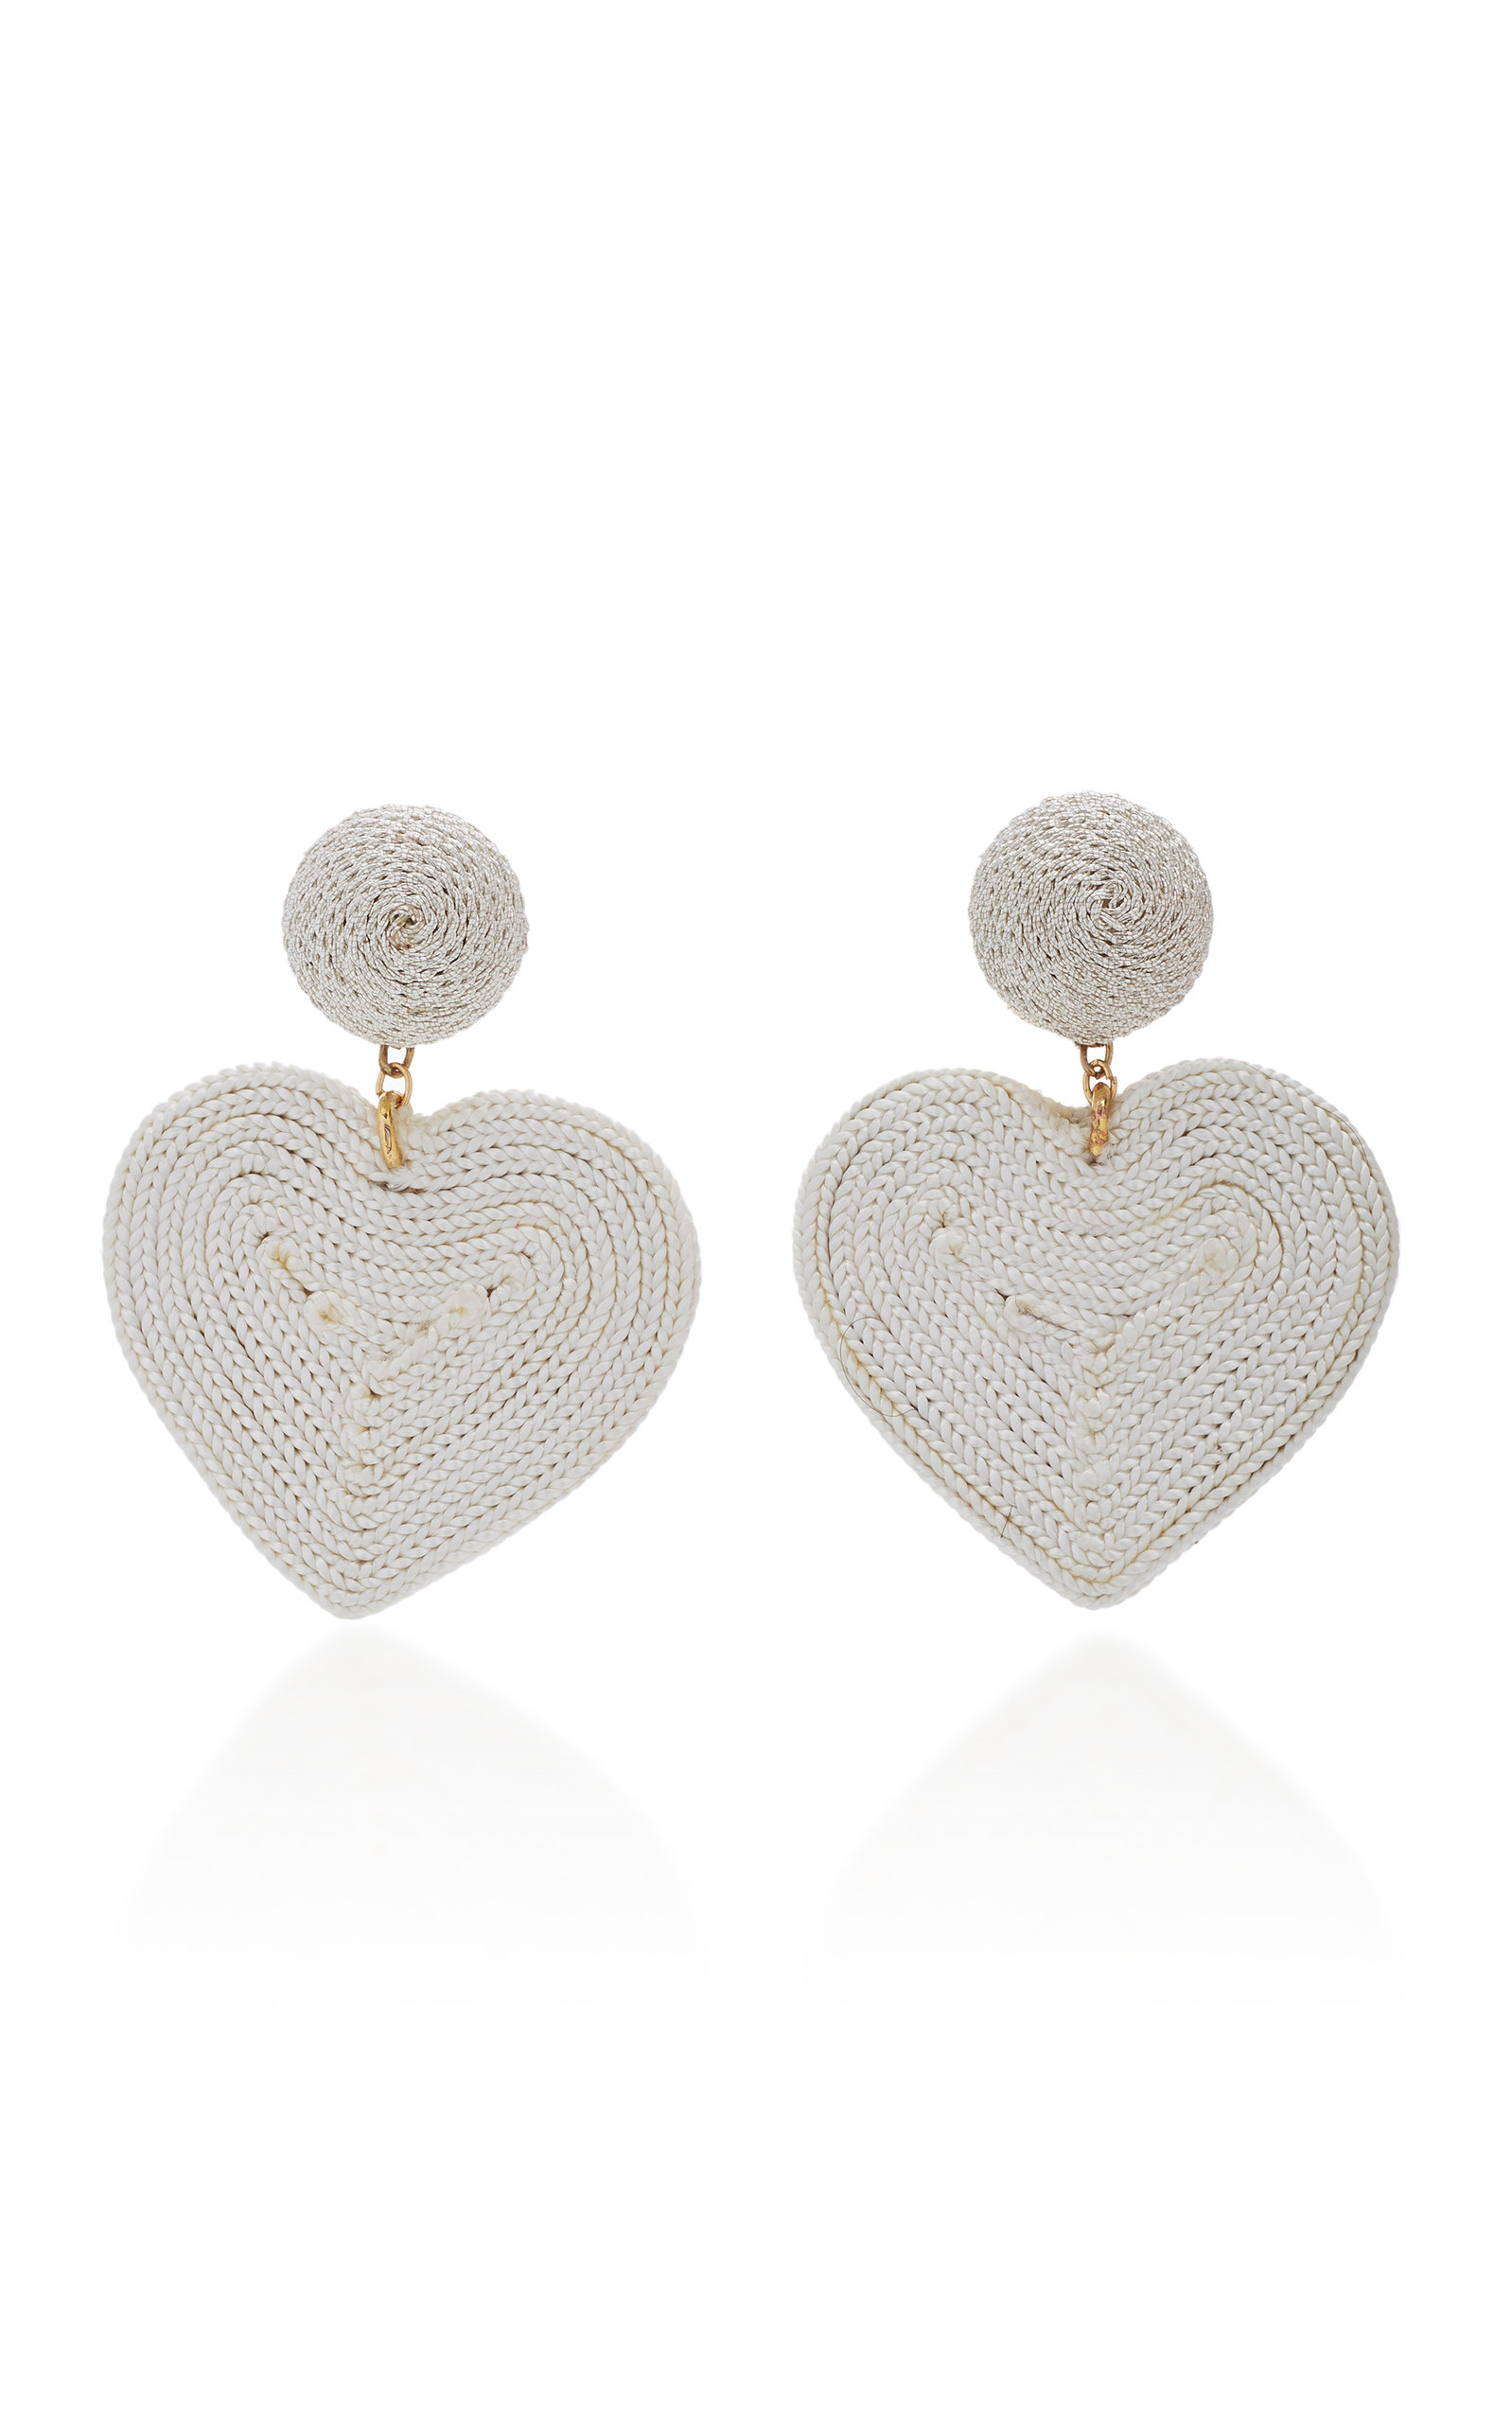 Cora Cord And Gold-Plated Clip Earrings, White